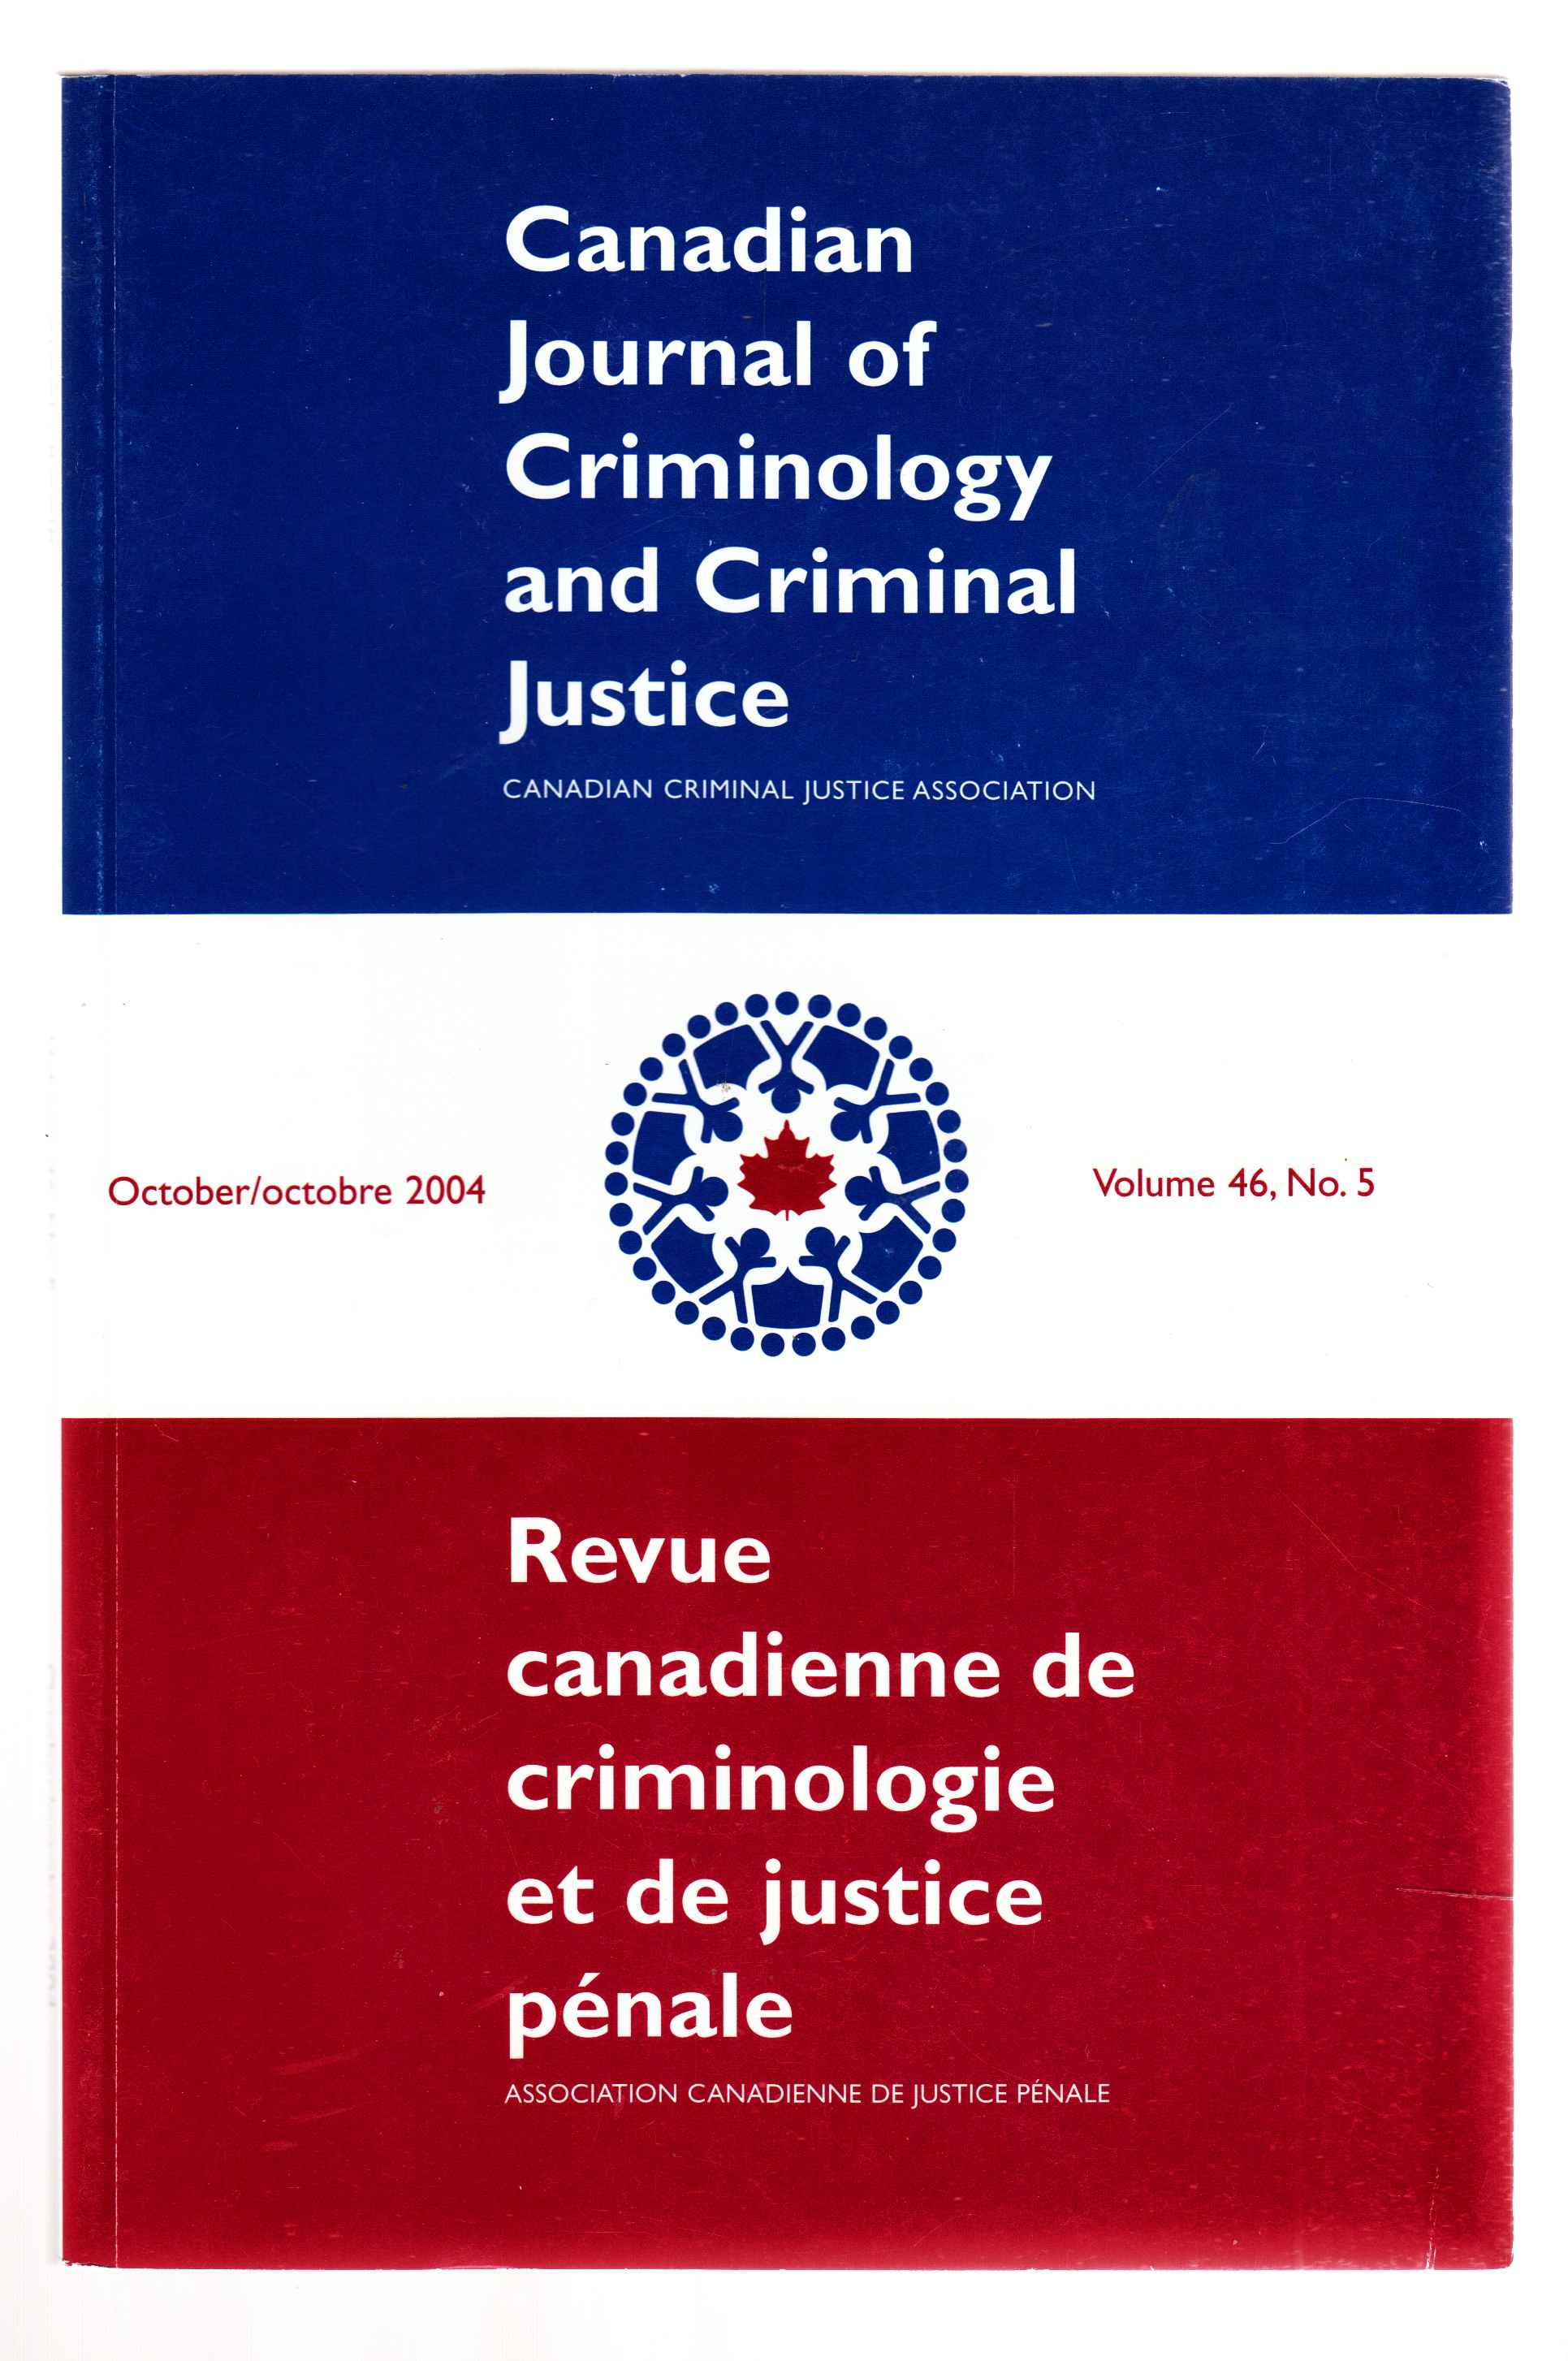 Image for Canadian Journal of Criminology and Criminal Justice October 2004 Volume 46, No. 5